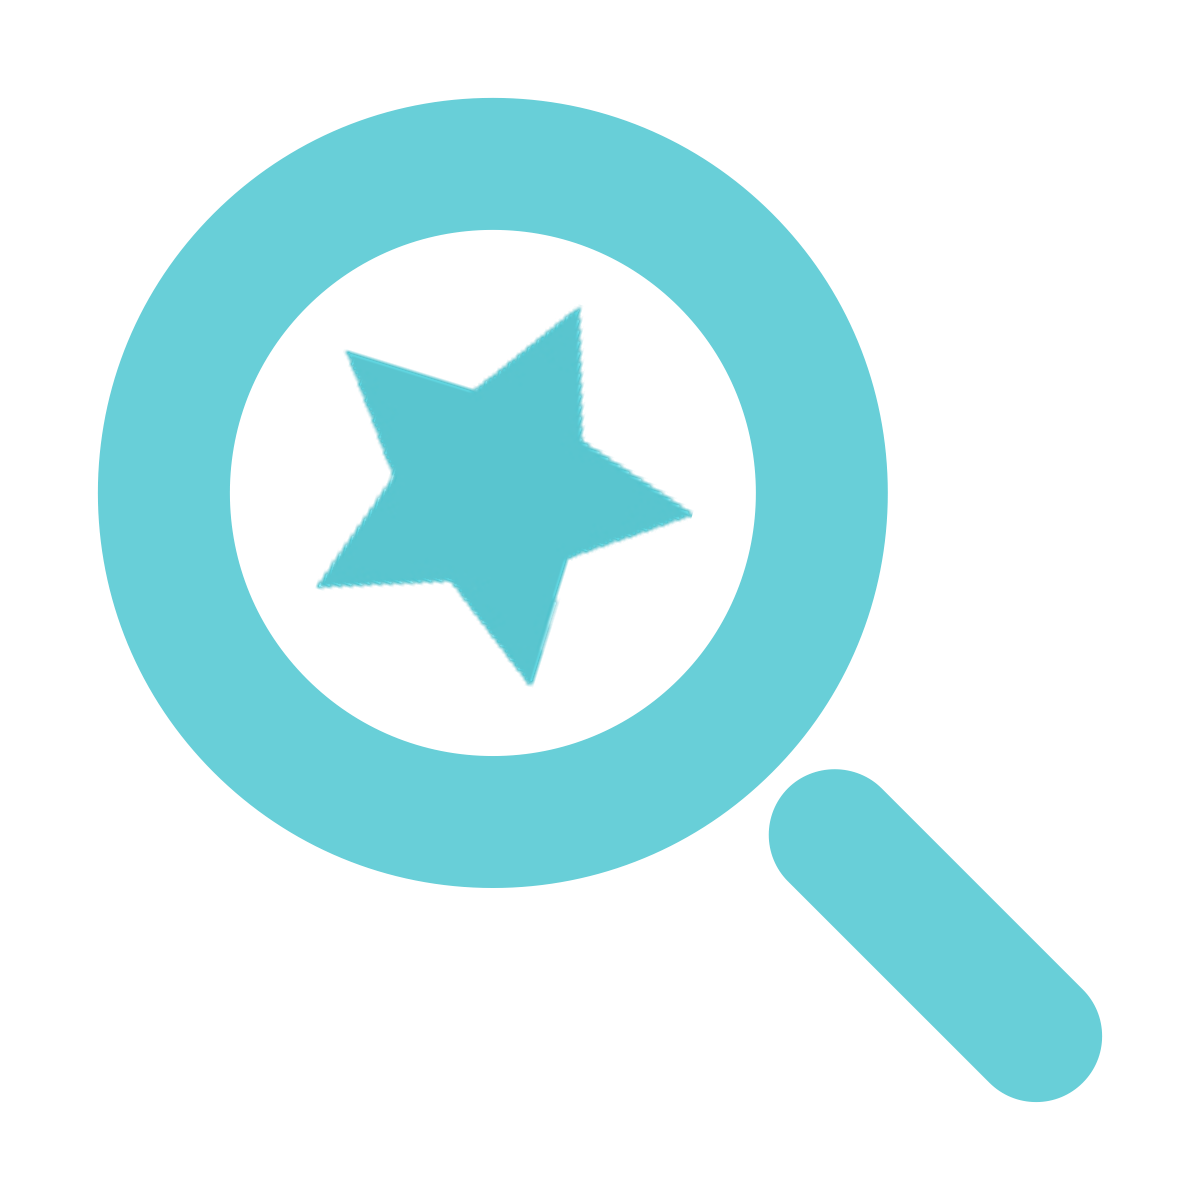 Find a Speaker - magnifying glass icon